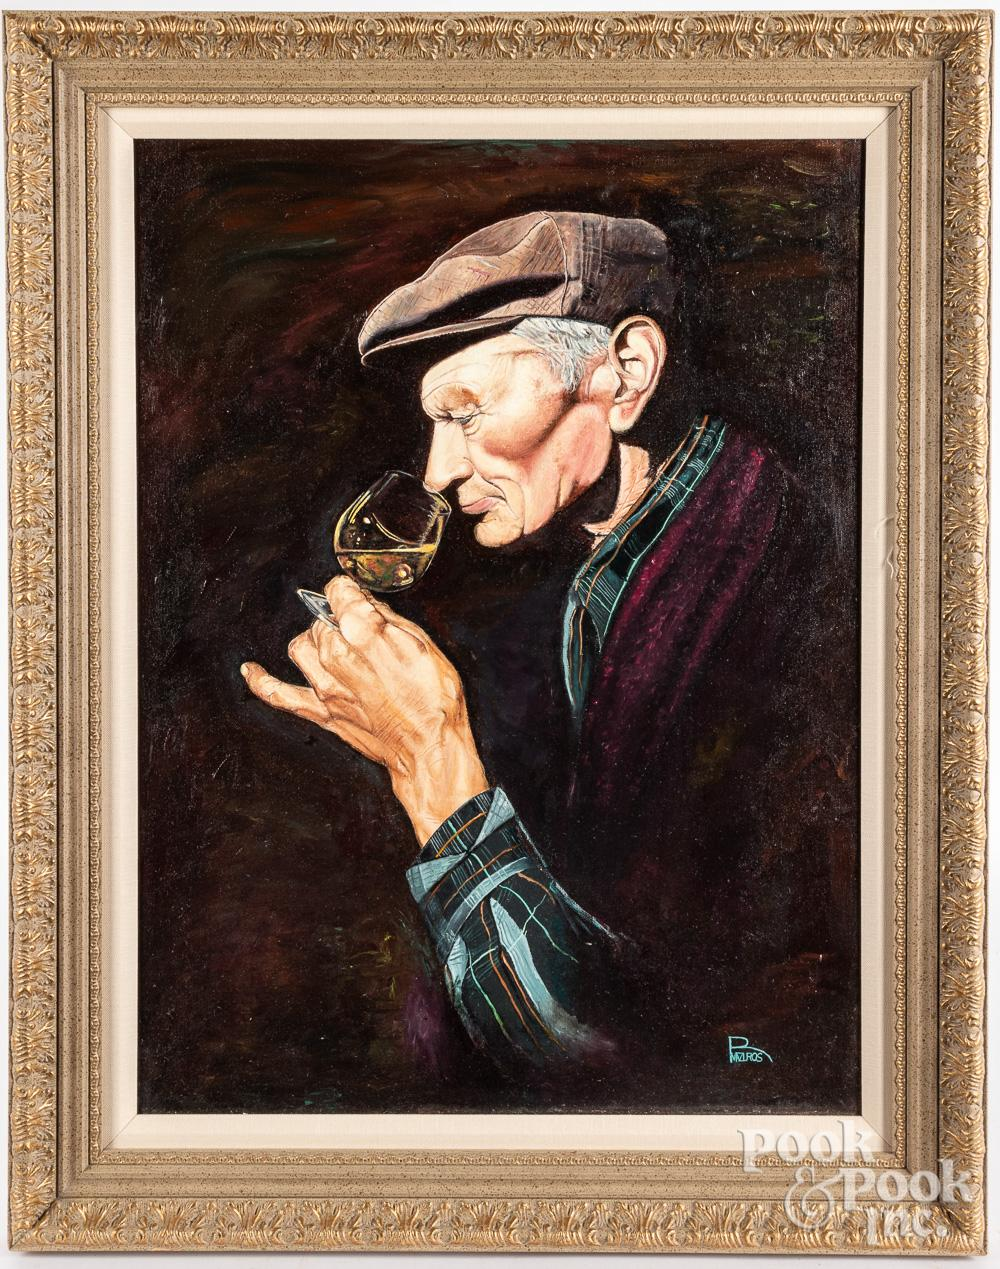 Oil on canvas portrait of a man with snifter